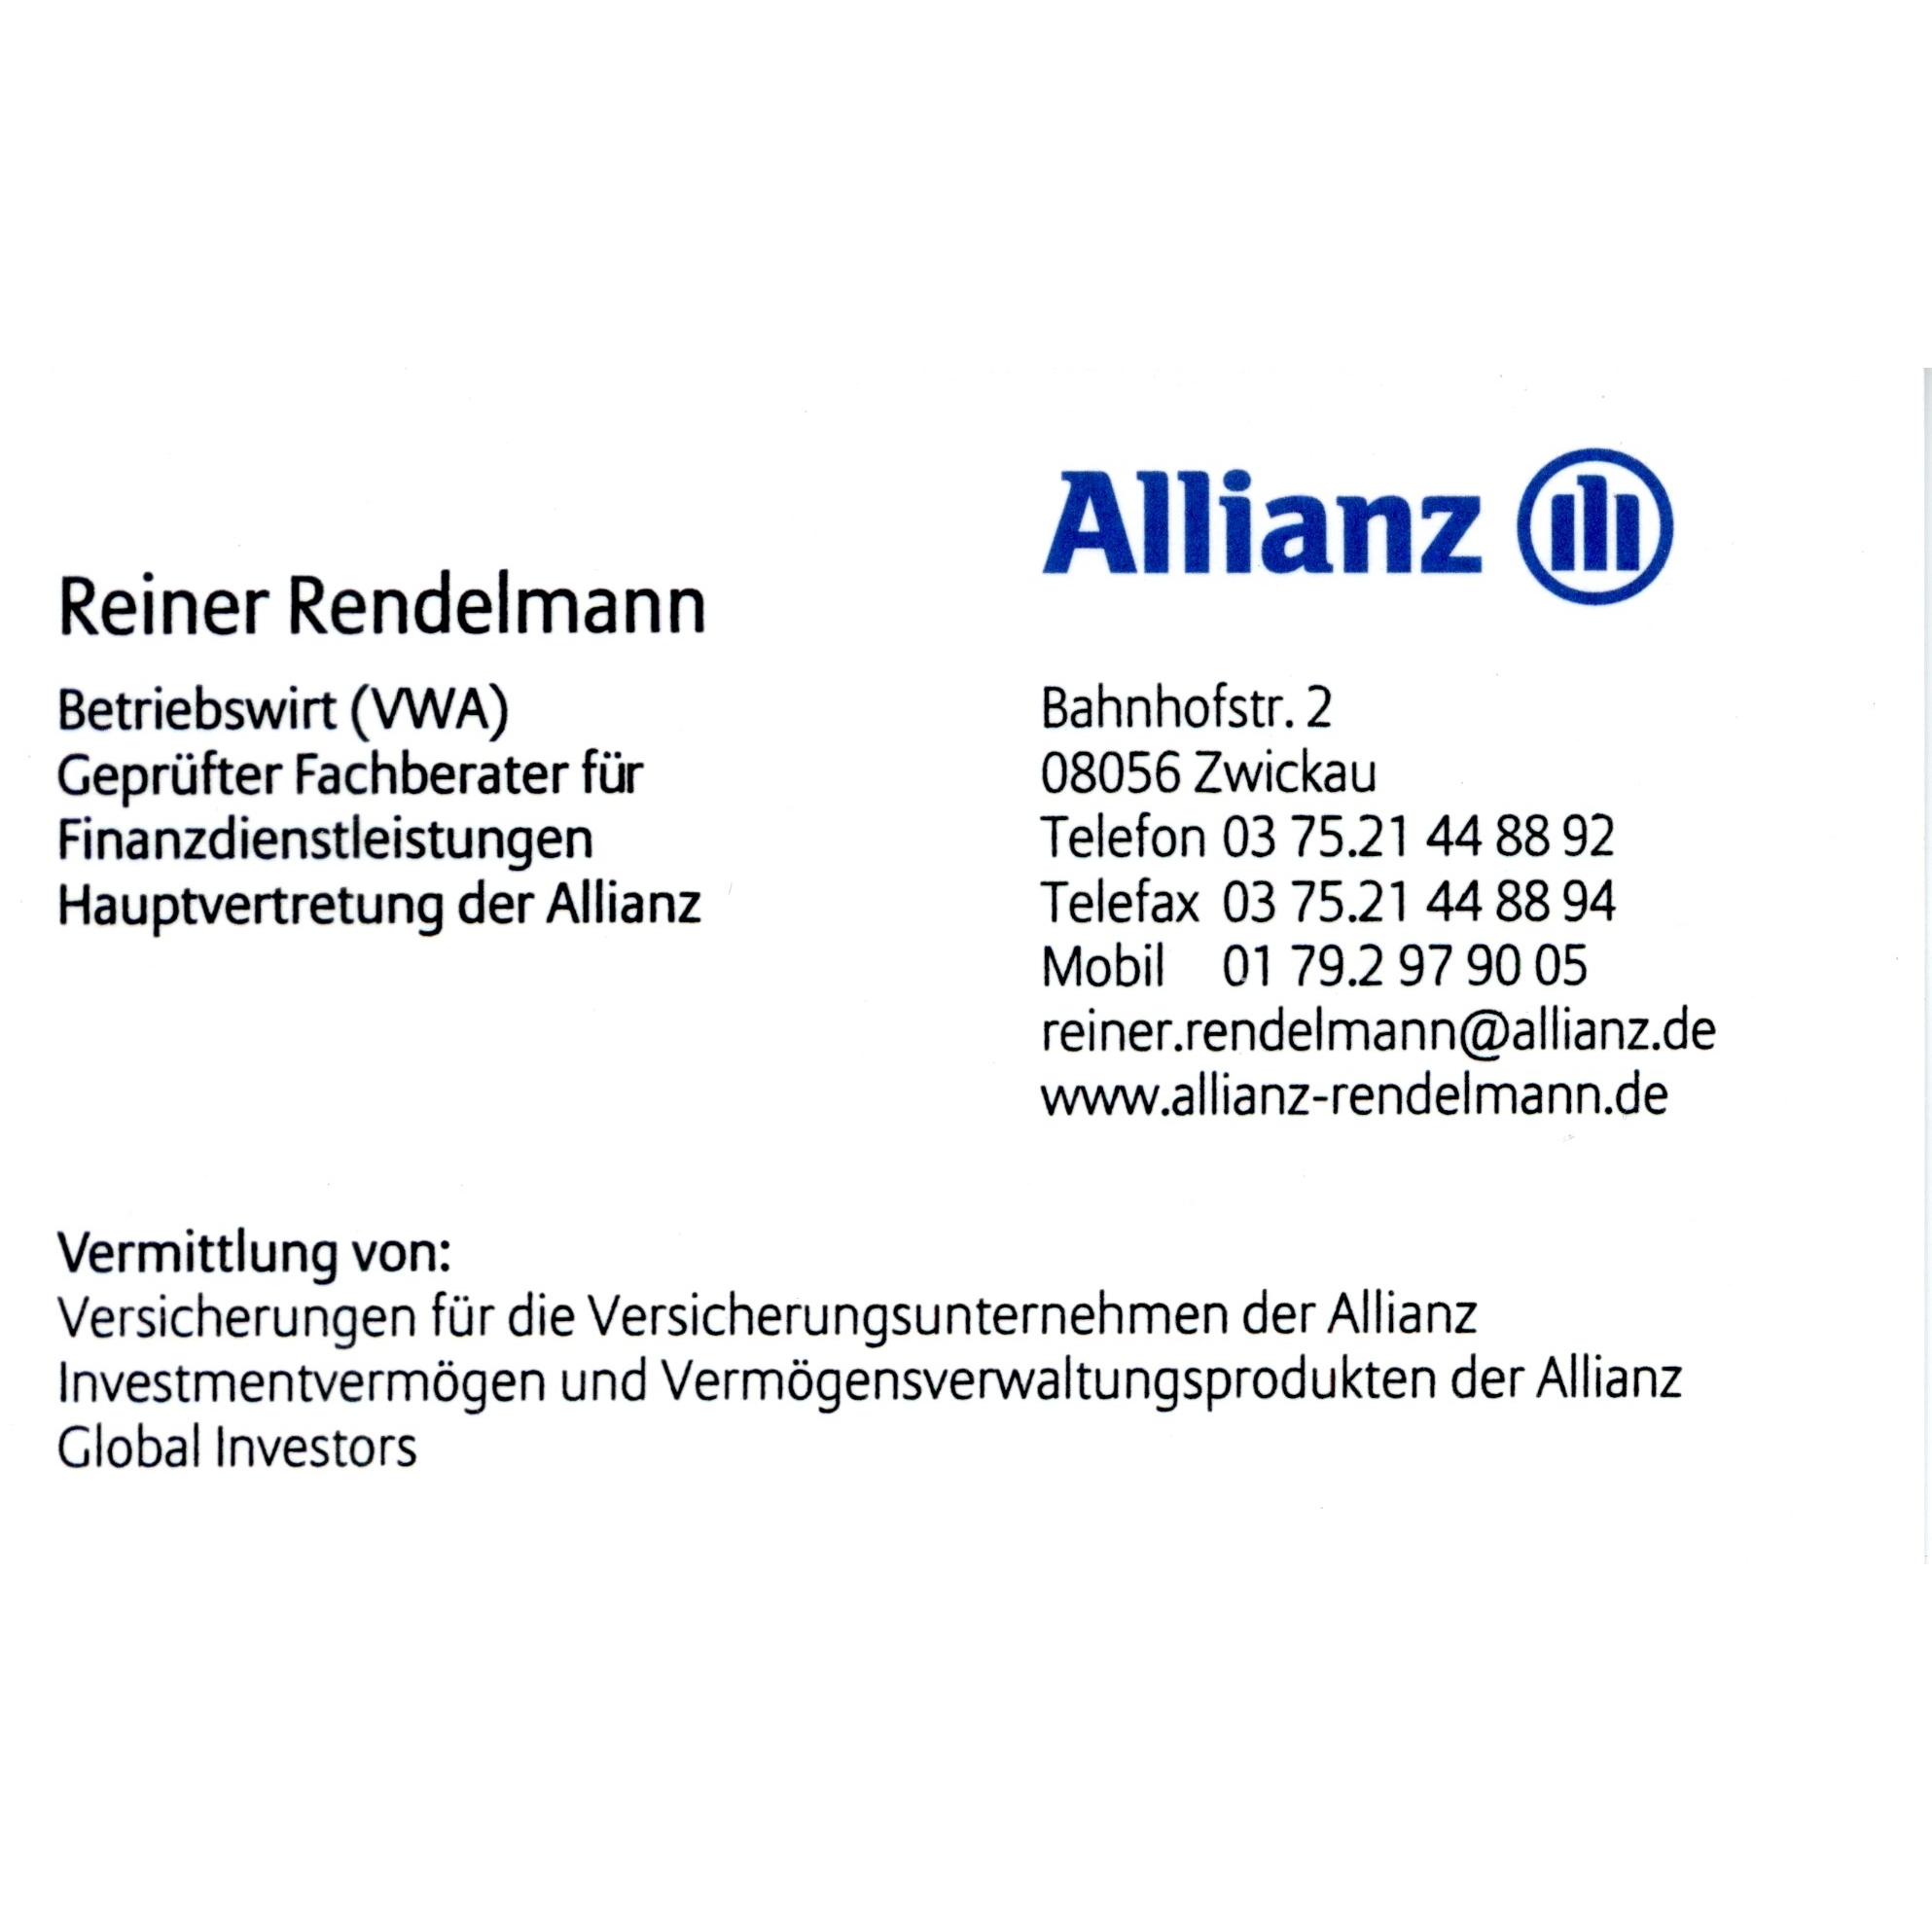 Allianz Reiner Rendelmann